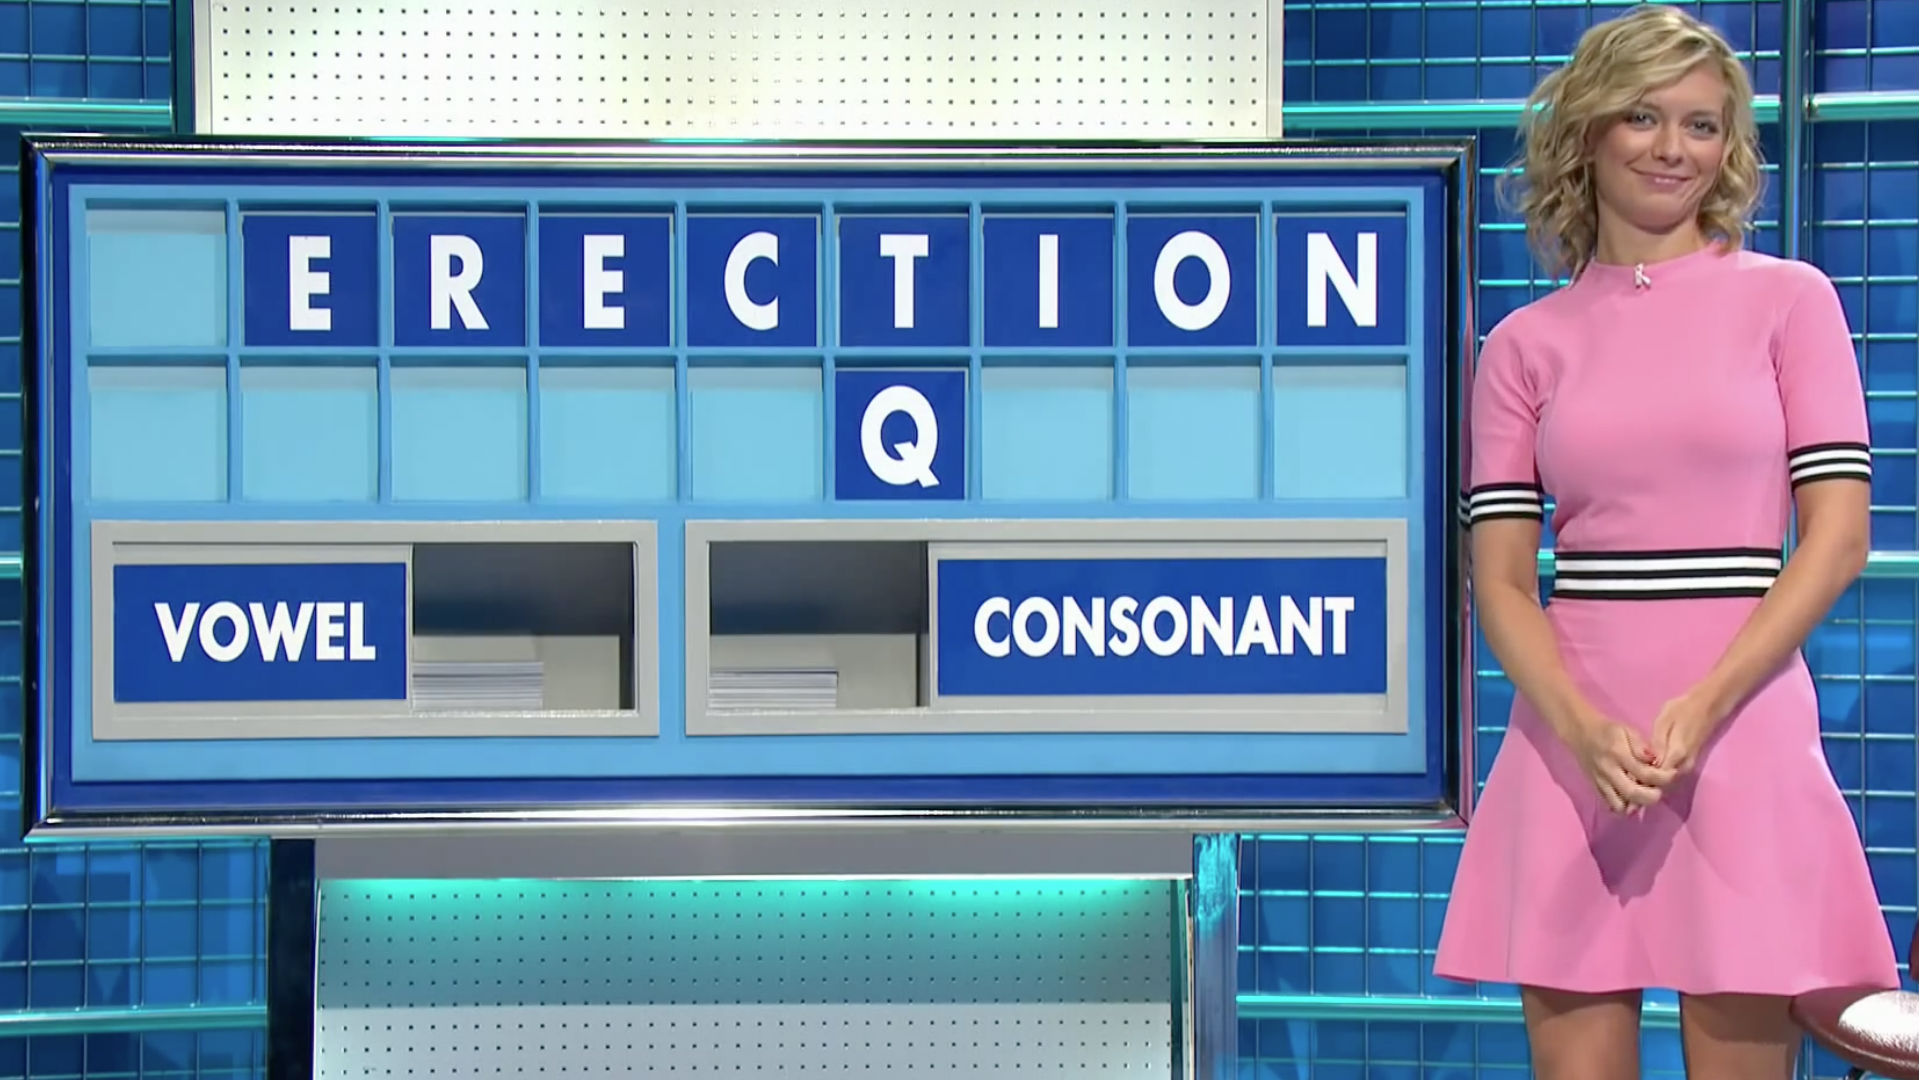 Rachel Riley spells out erection on Countdown